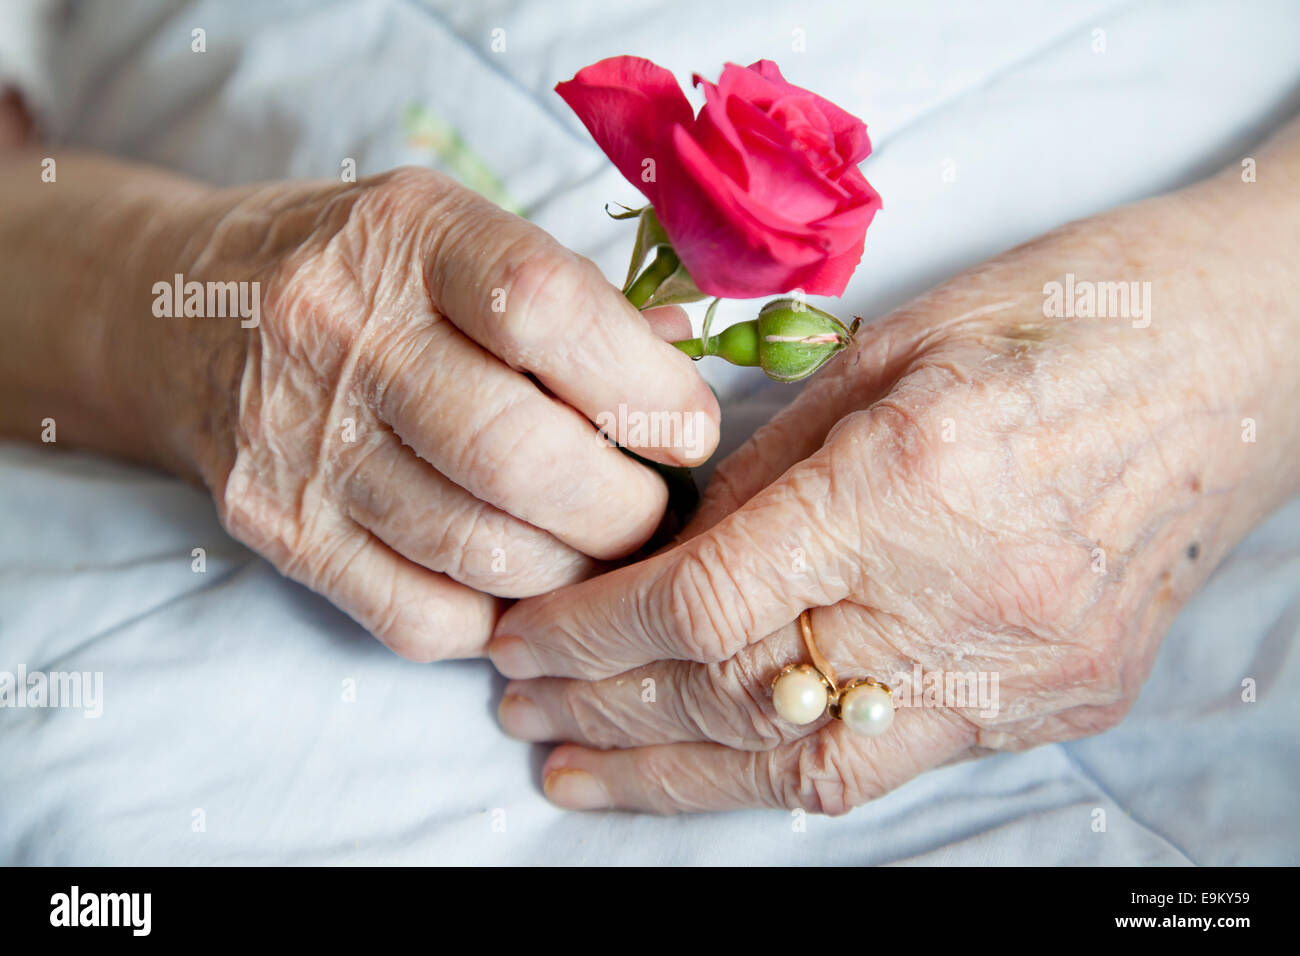 Hands of 92 years old lady holding beautiful rose - Stock Image